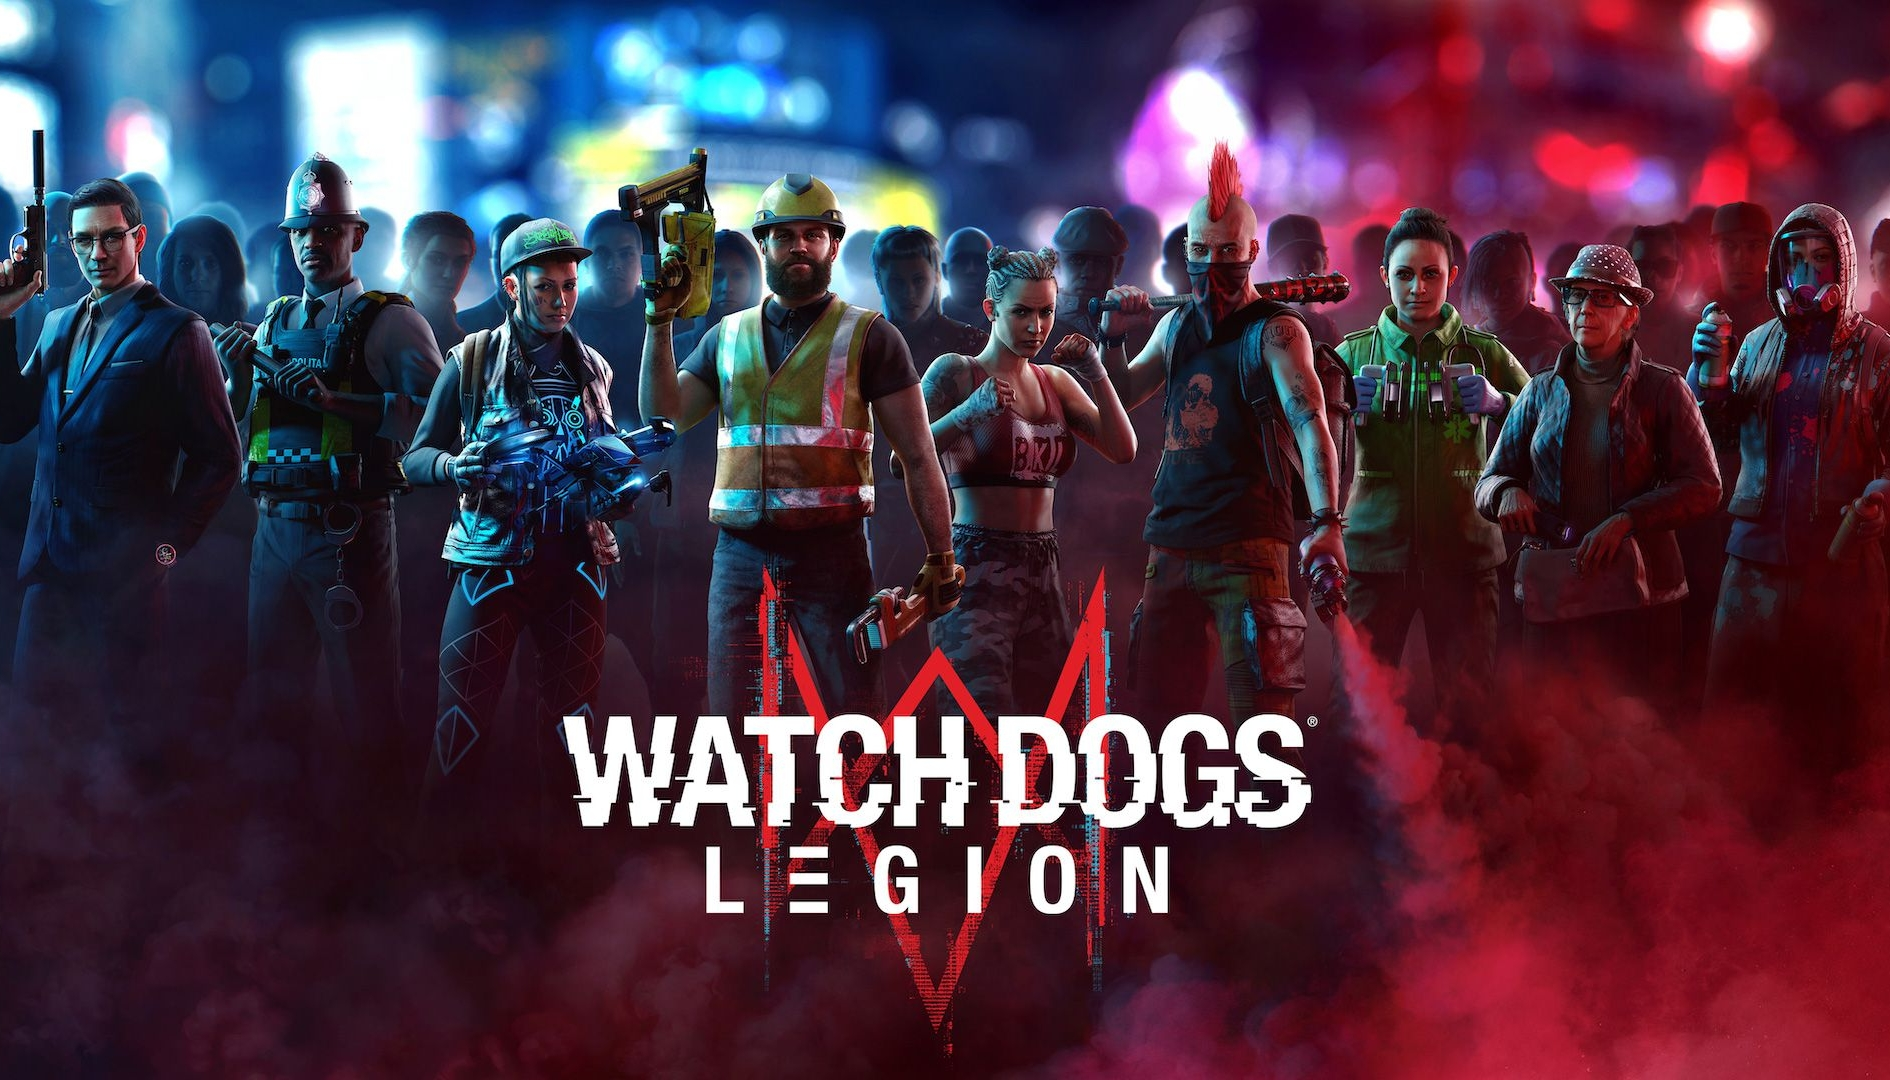 Watch Dogs Legion: requisiti PC per 1080p, 4K e ray tracing